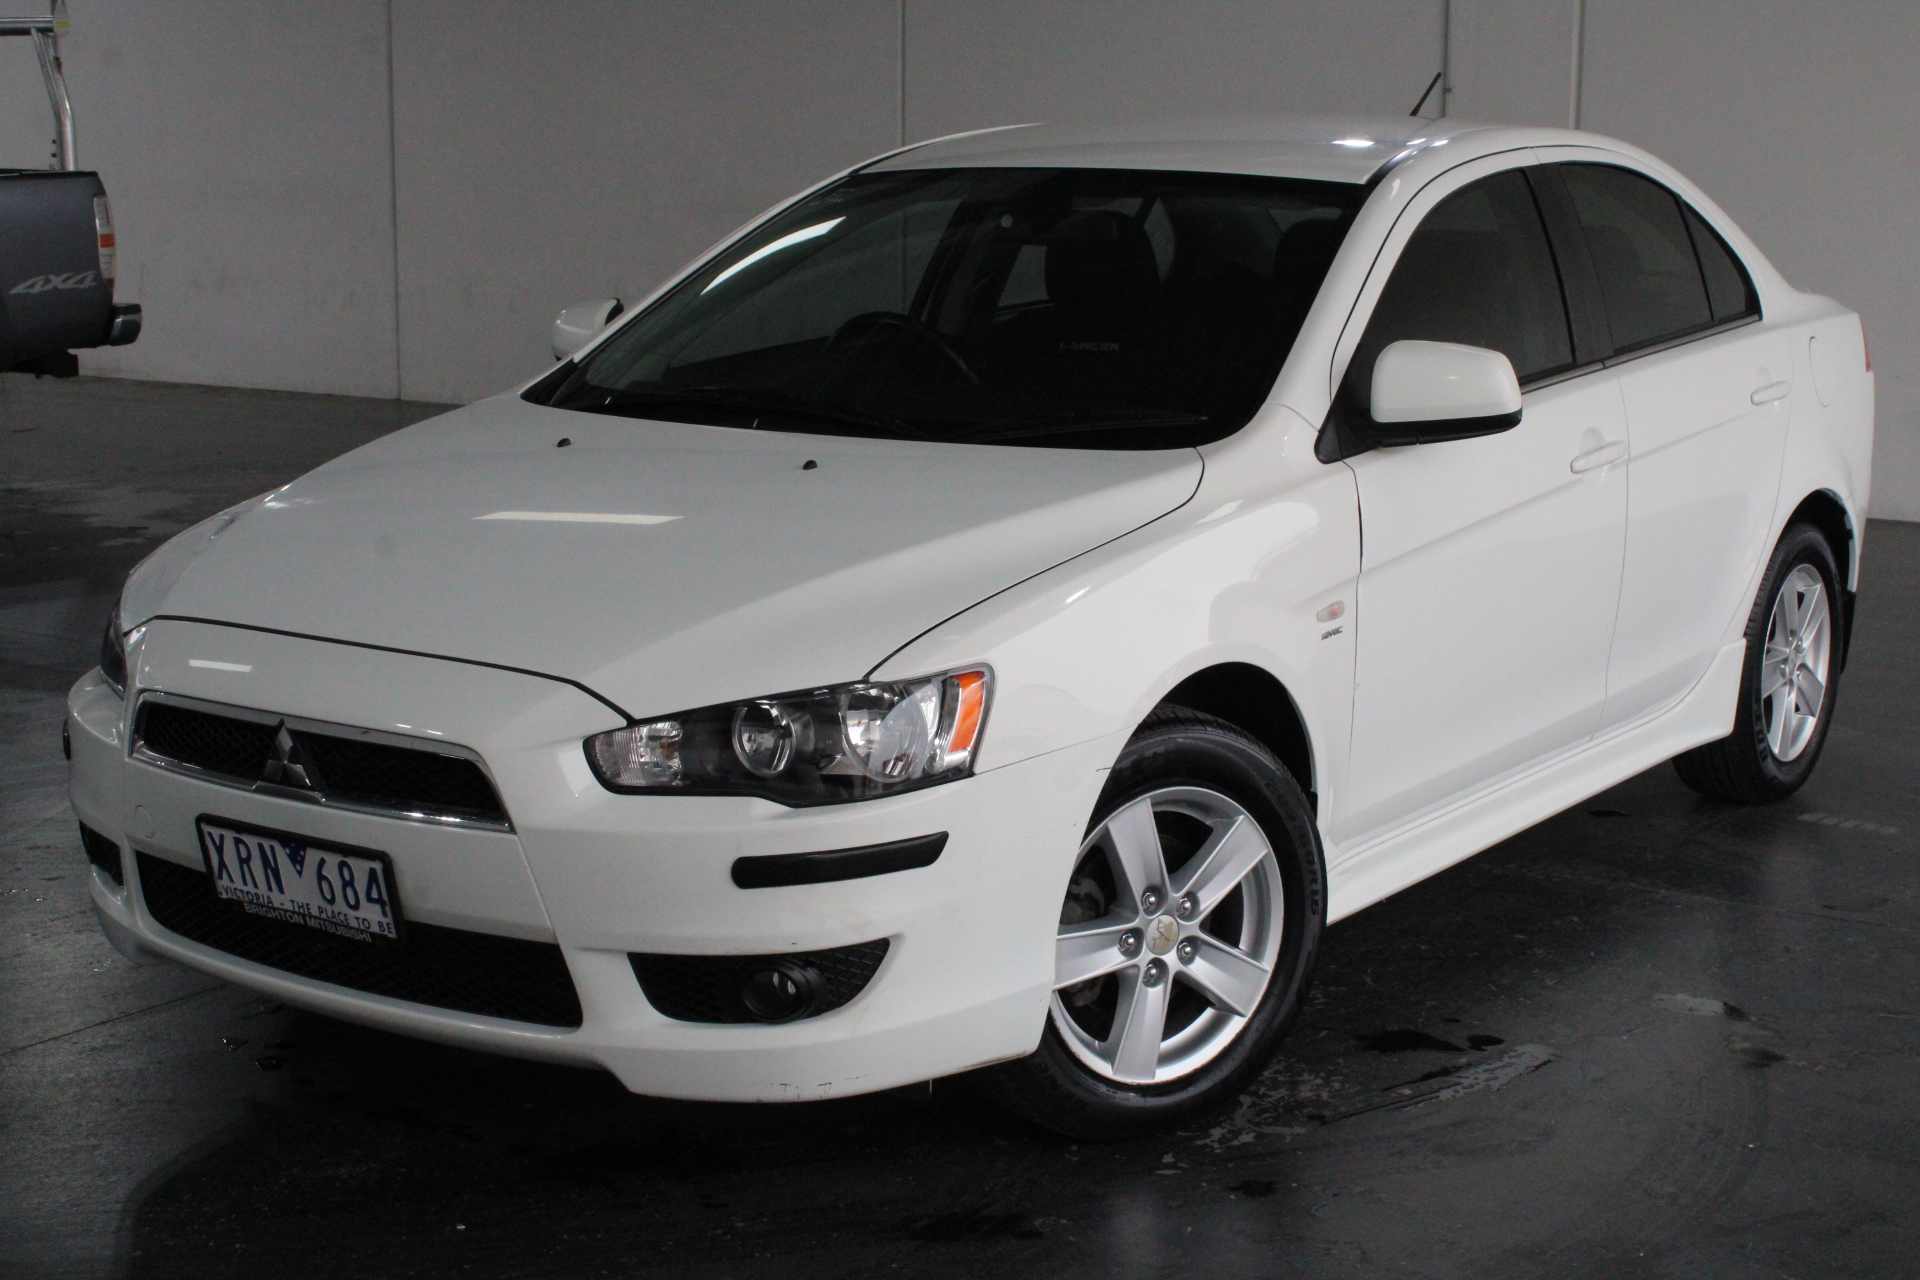 2009 Mitsubishi Lancer VR CJ Manual Sedan